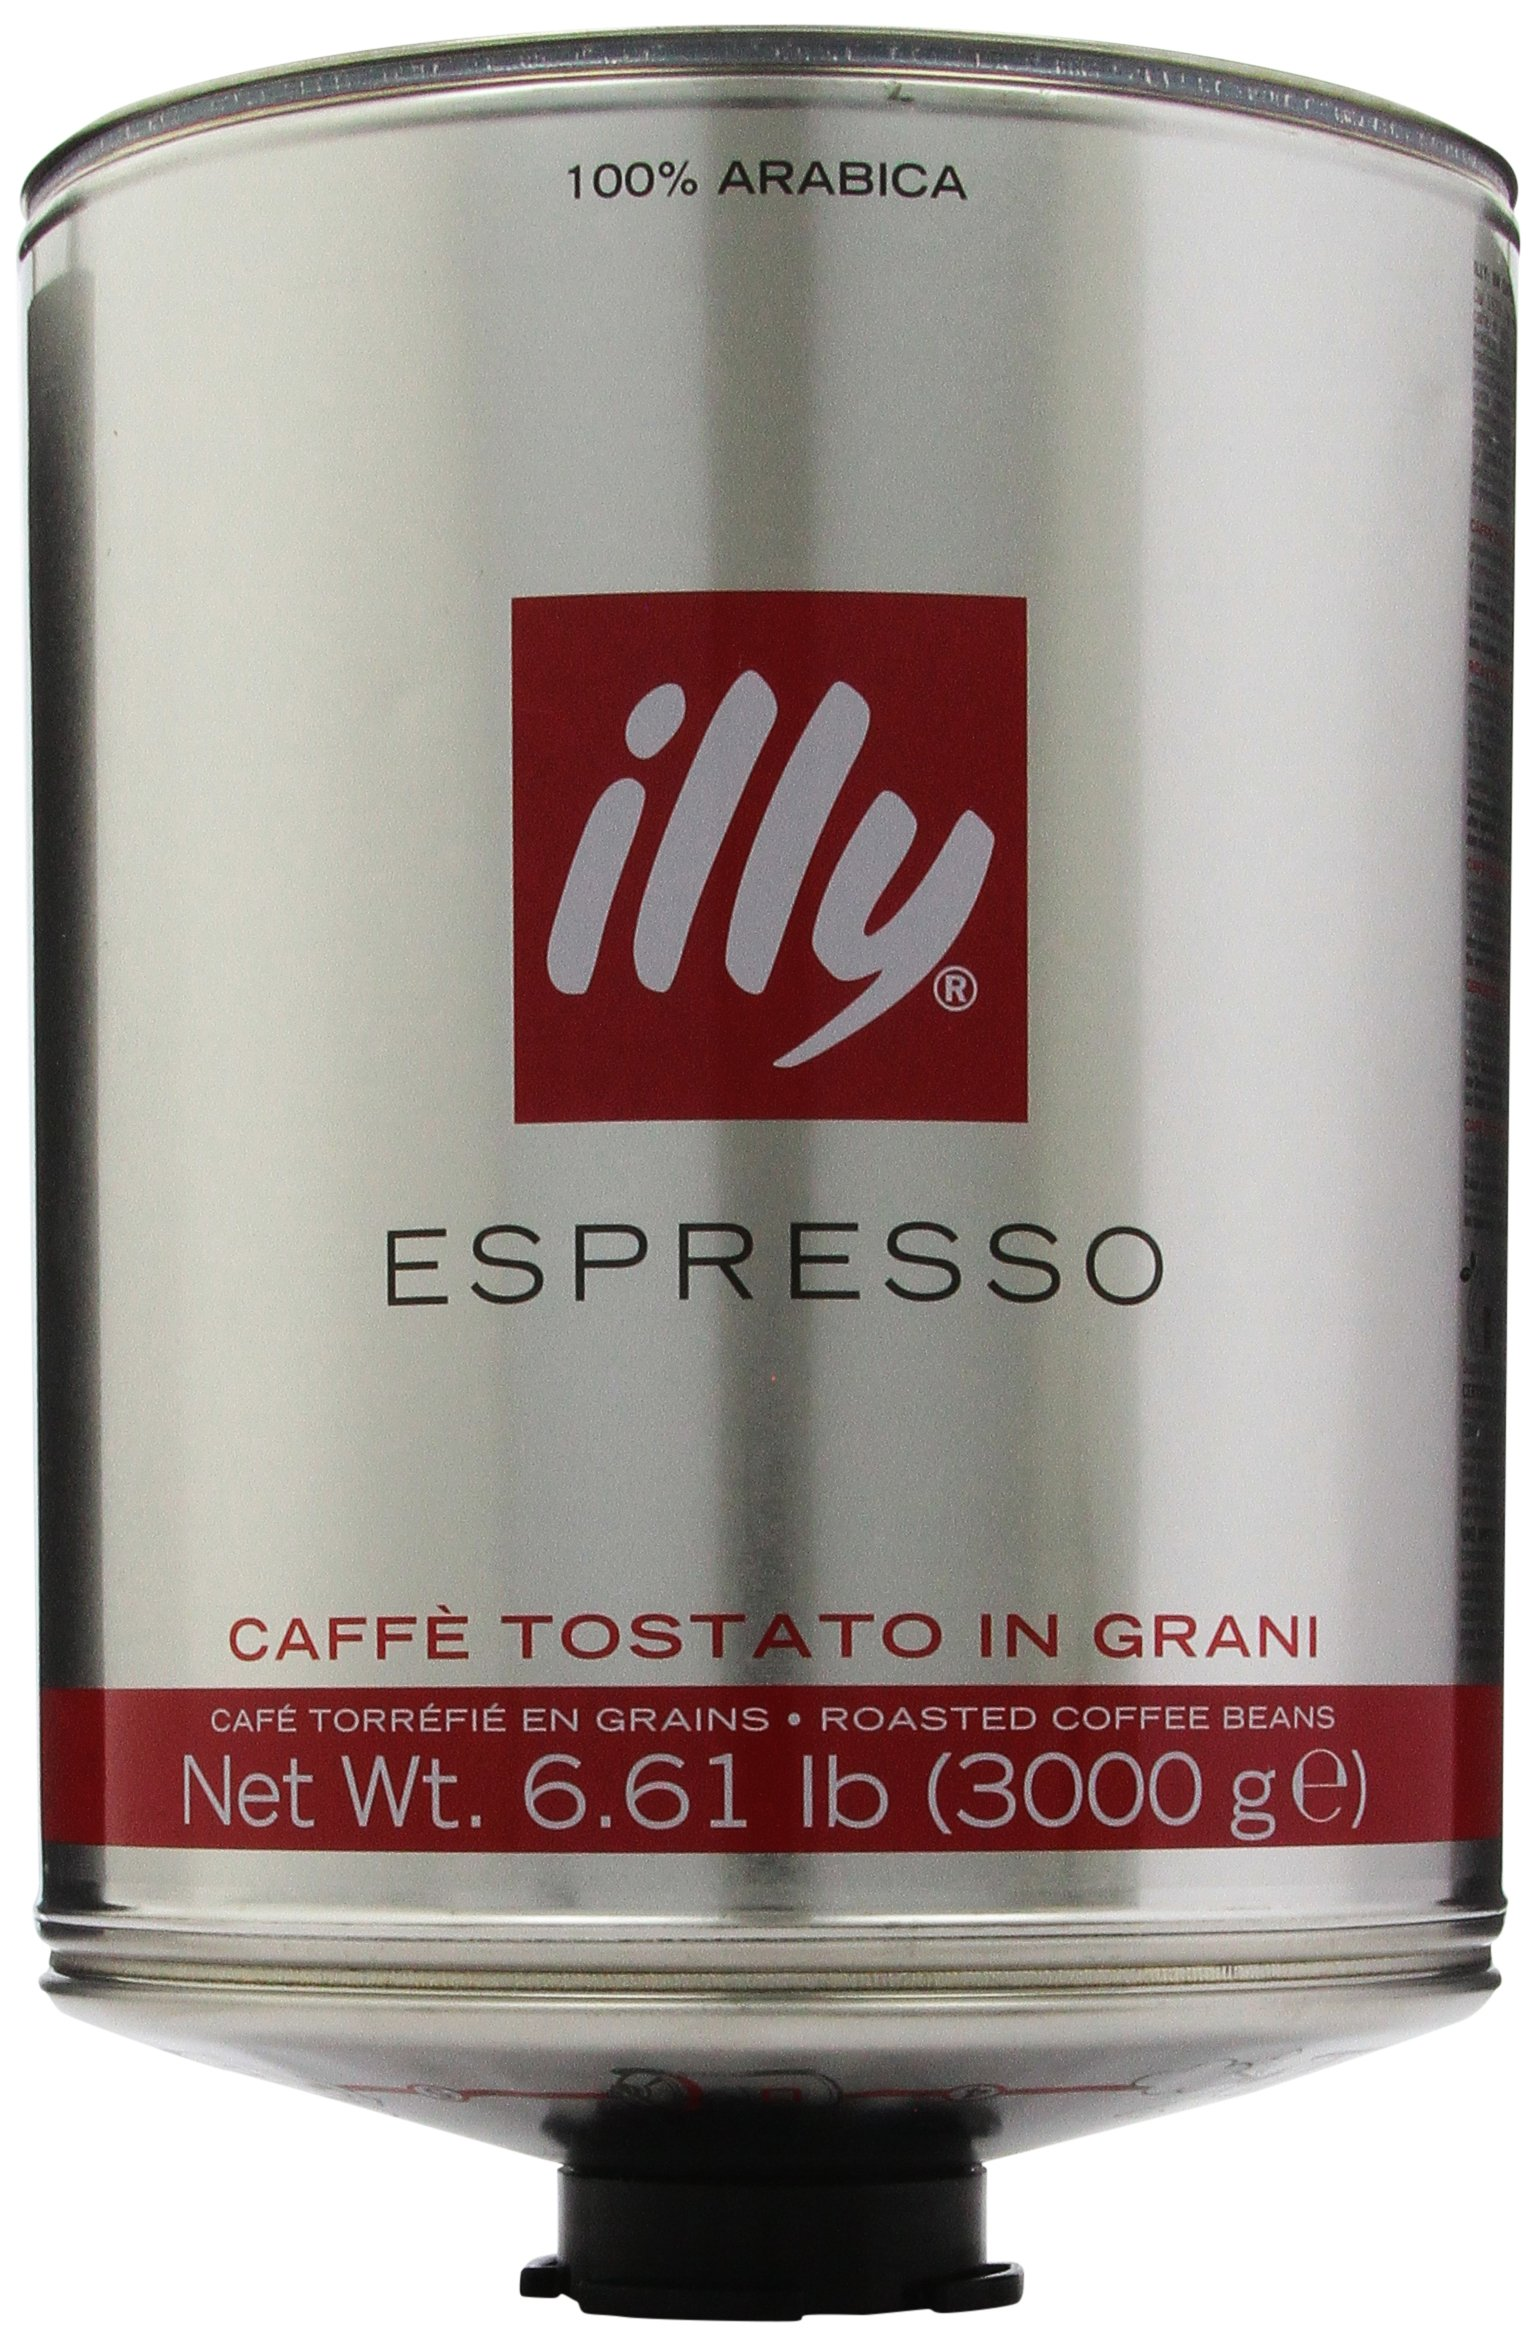 illy Scuro Dark Roast, Red Band, Whole Bean Coffee, 6.61-Pound Cans (Pack of 2) by Illy (Image #1)